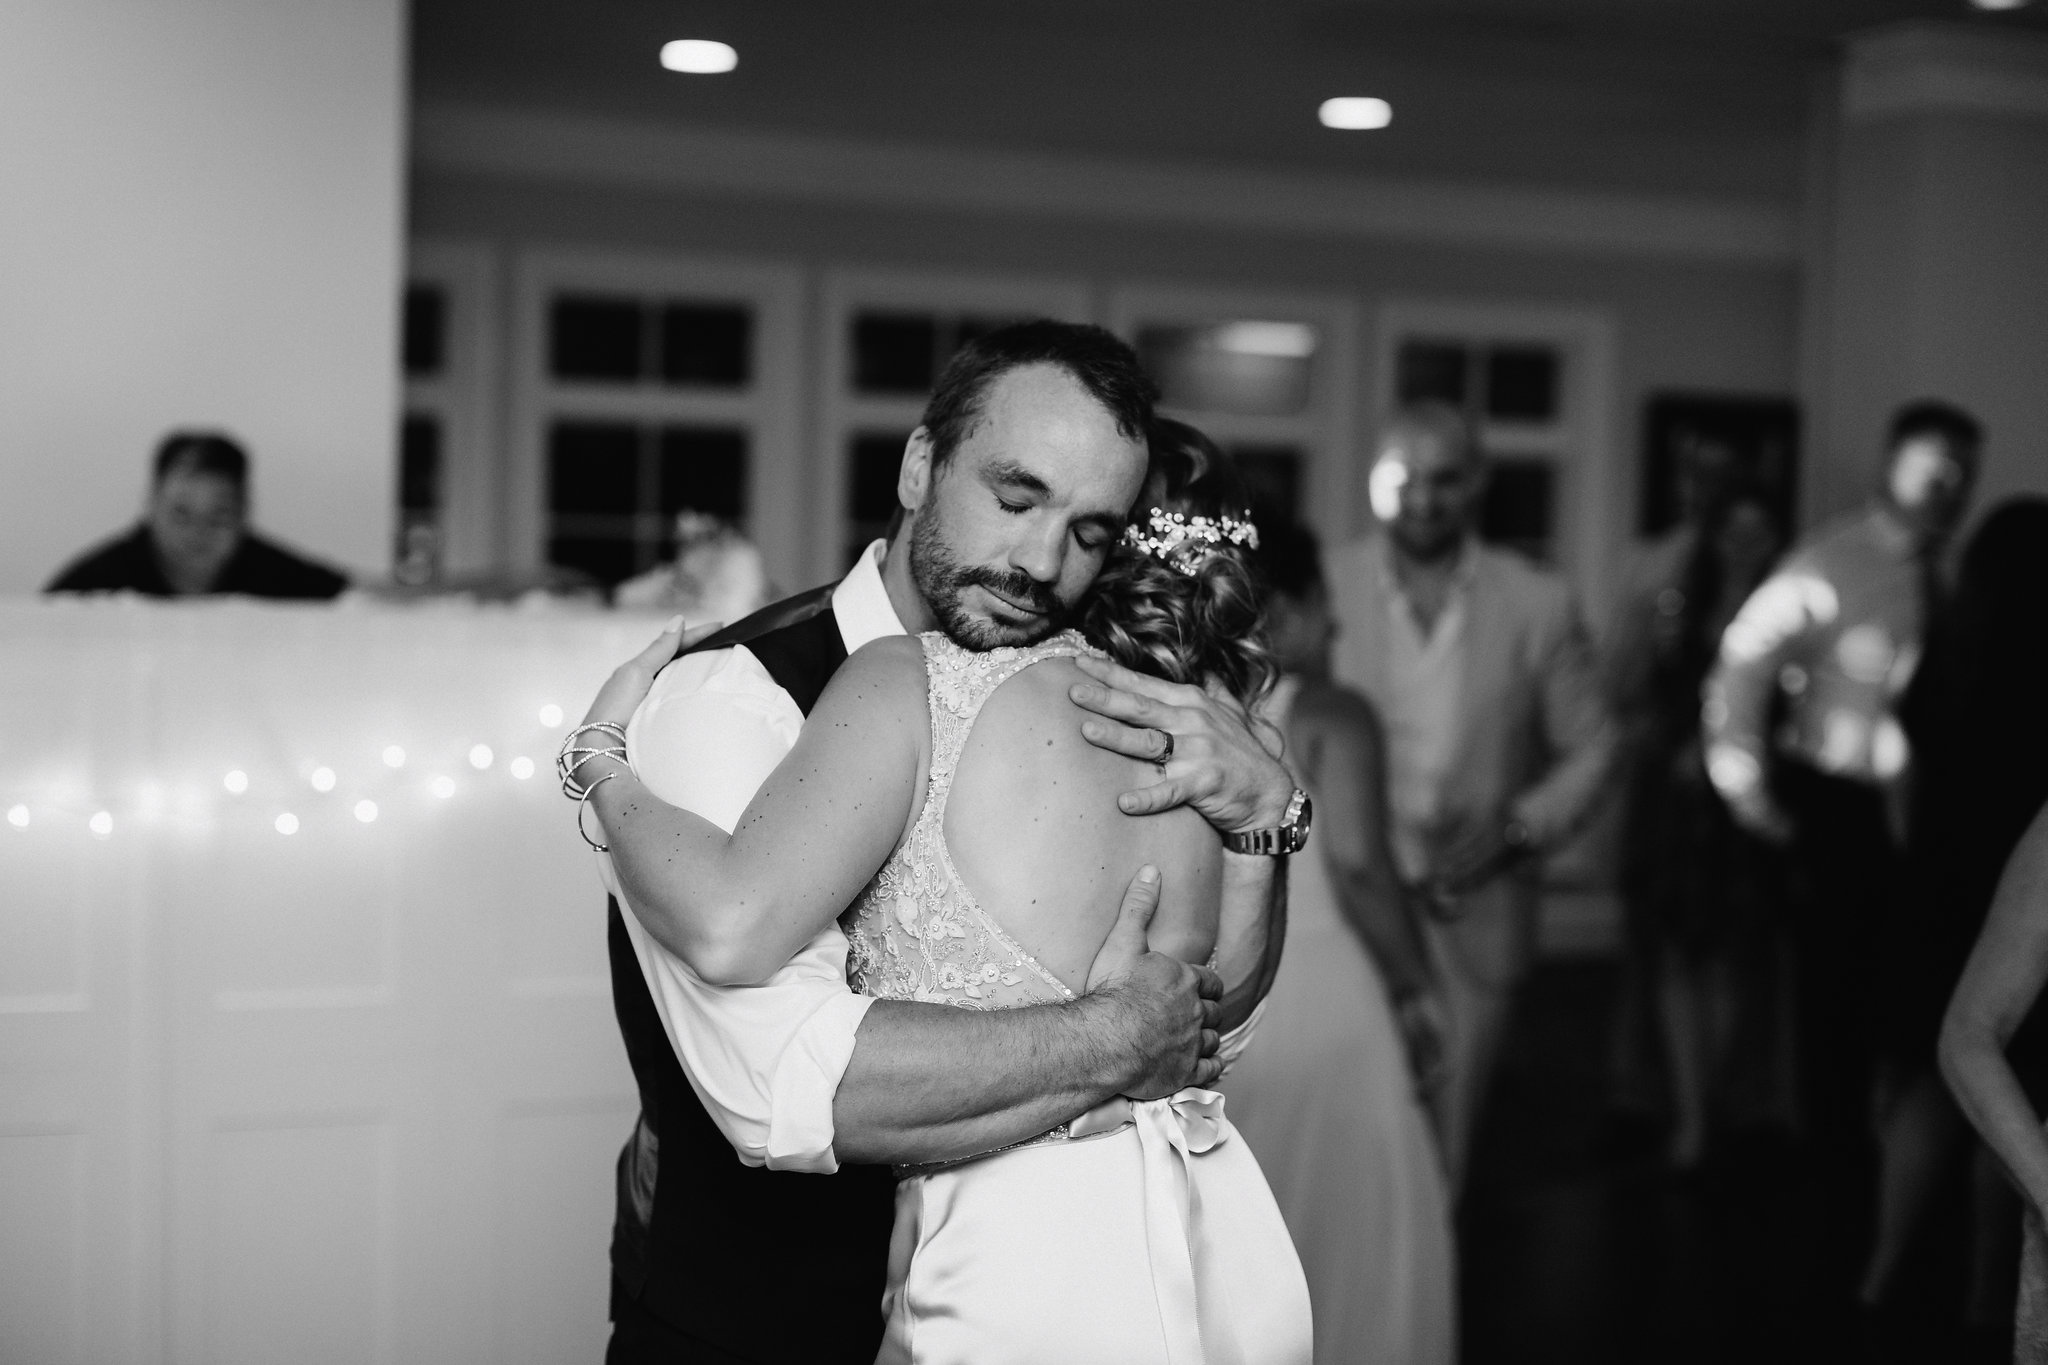 Nikki&DrewMarried2017-08-14at17.53.41PM39.jpg